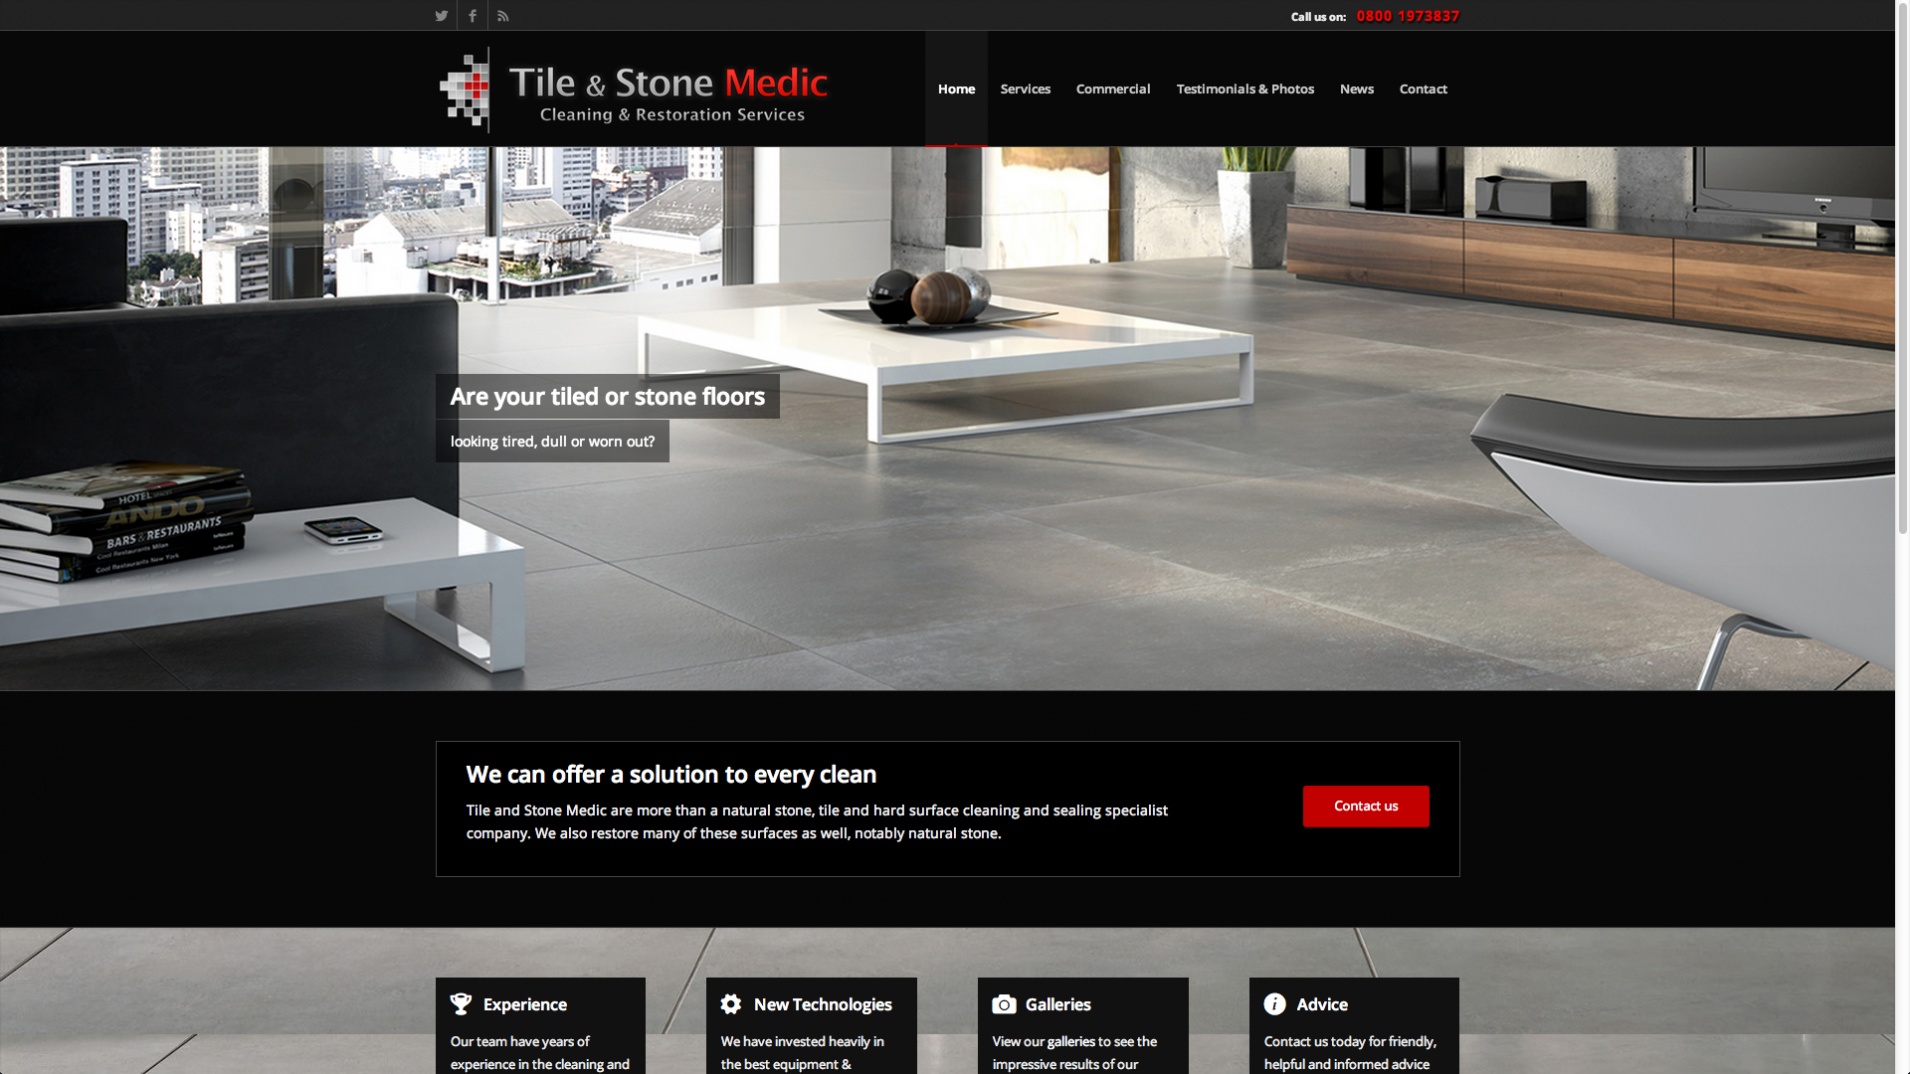 Screen Shot 2013 12 23 at 16.36.56 - Website design for nationwide stone floor restoration company